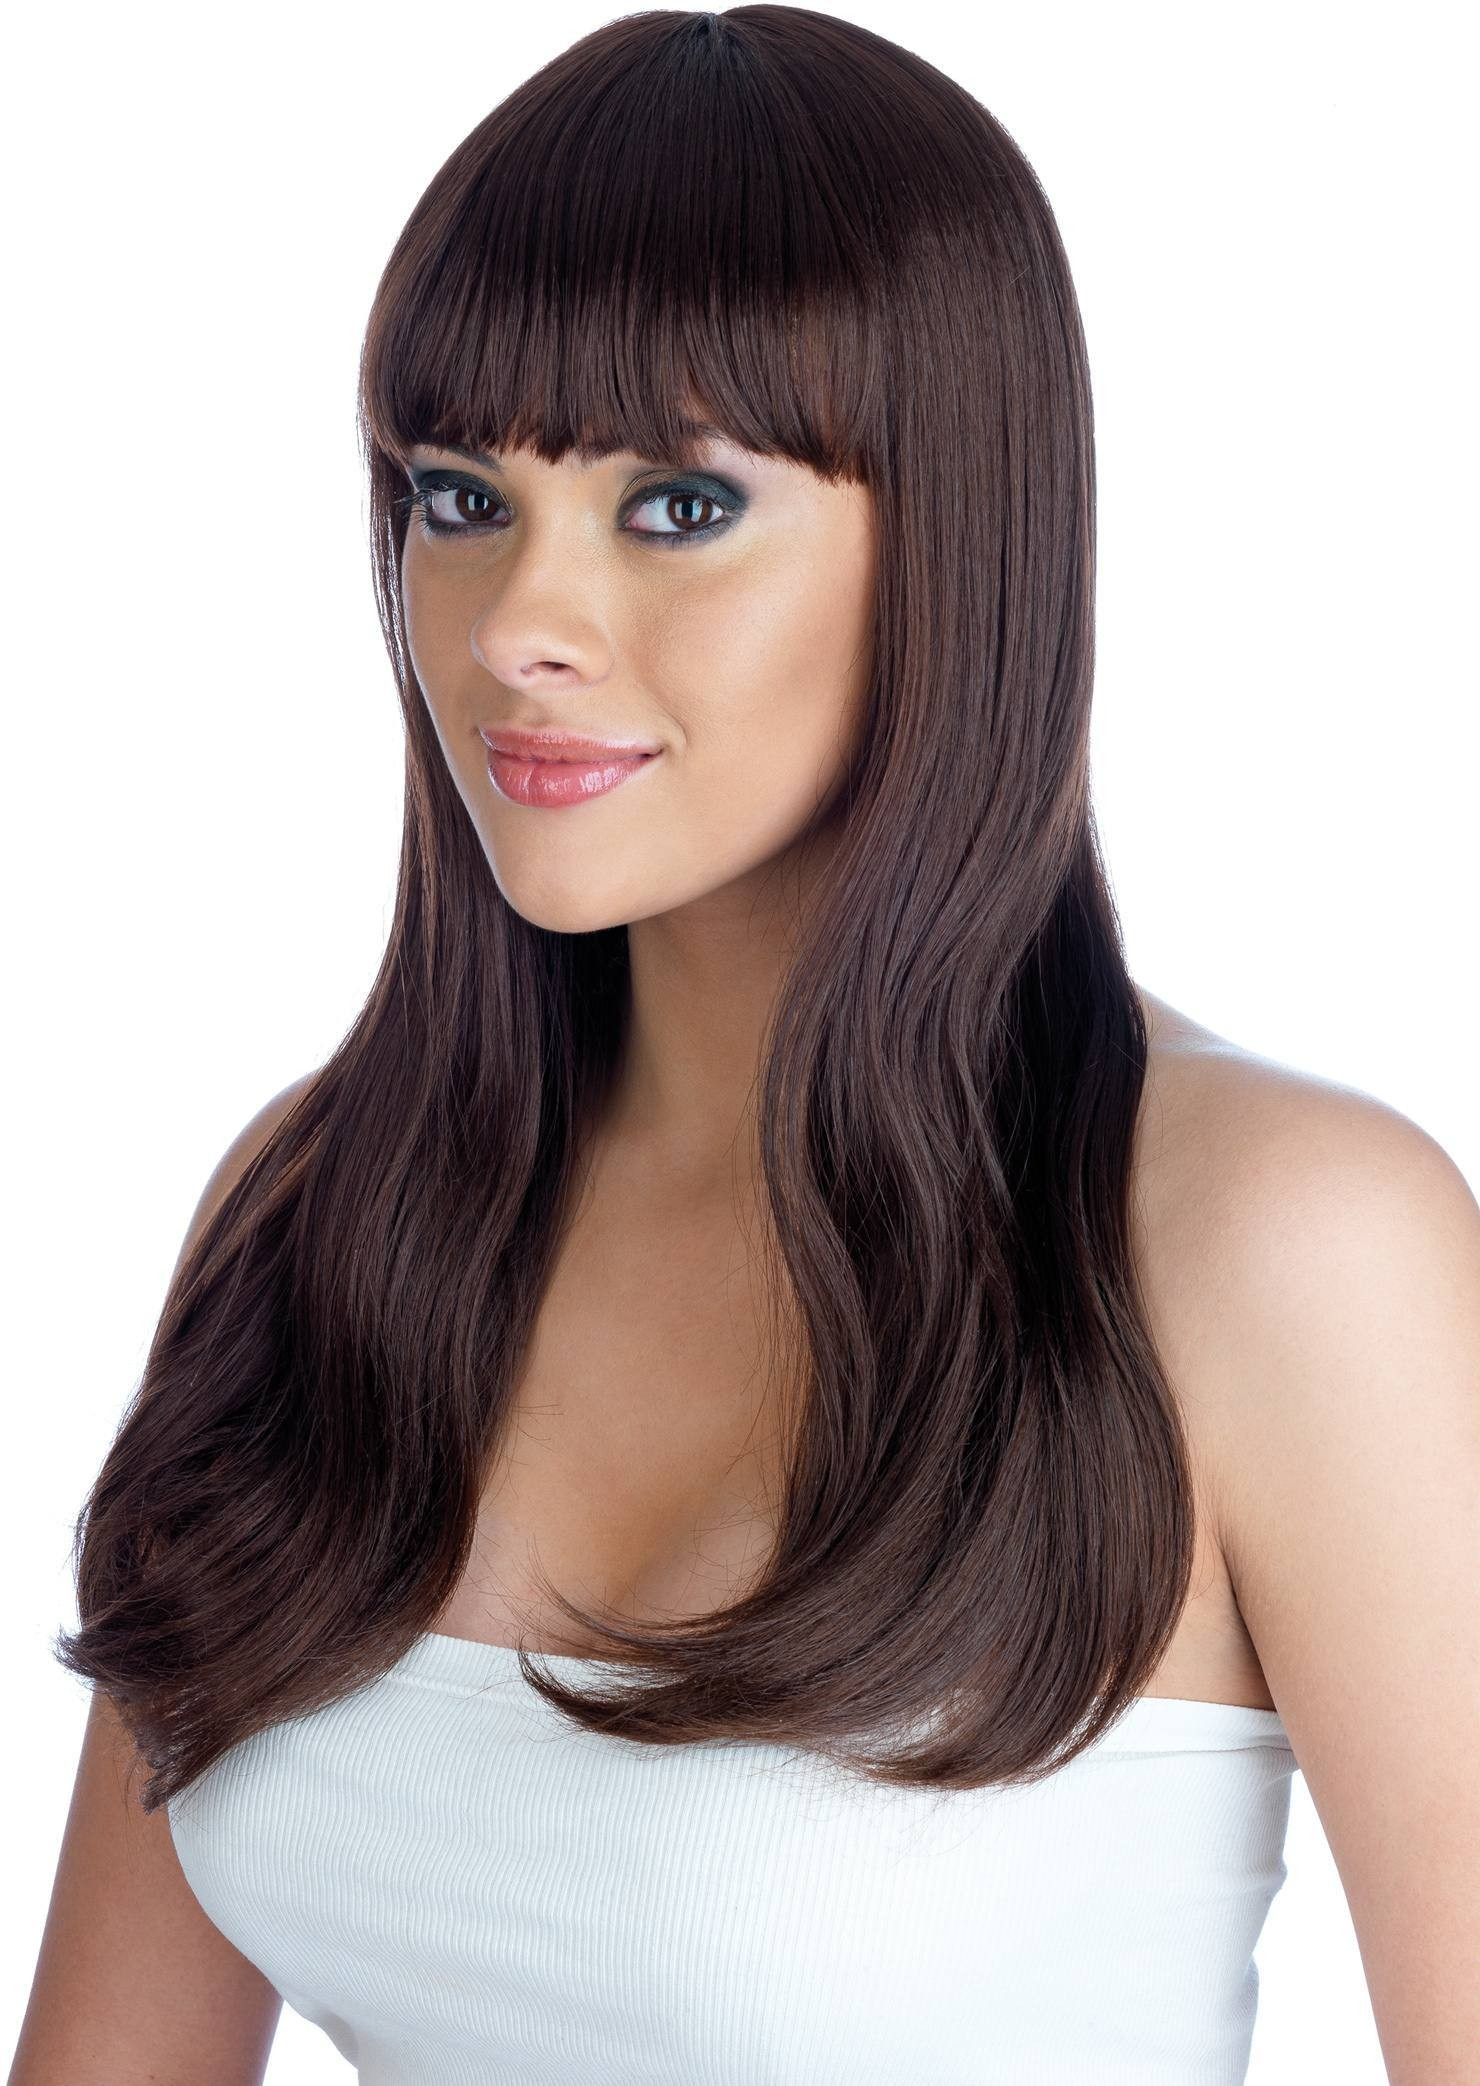 Brown Fringe Wig (Pet) (110G) One Size Ladies (1920S)